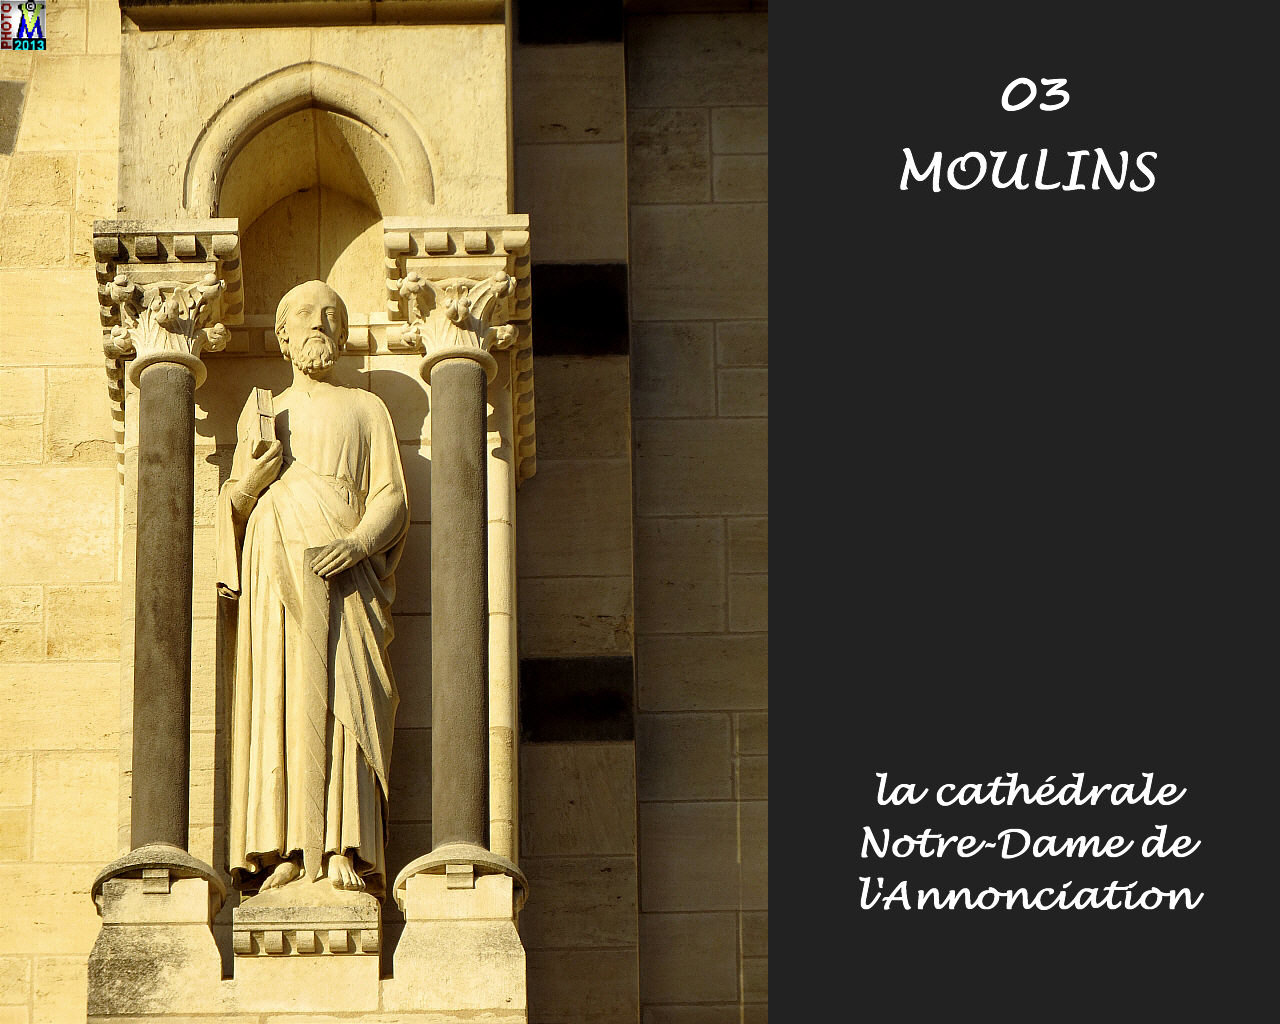 03MOULINS_cathedrale_122.jpg